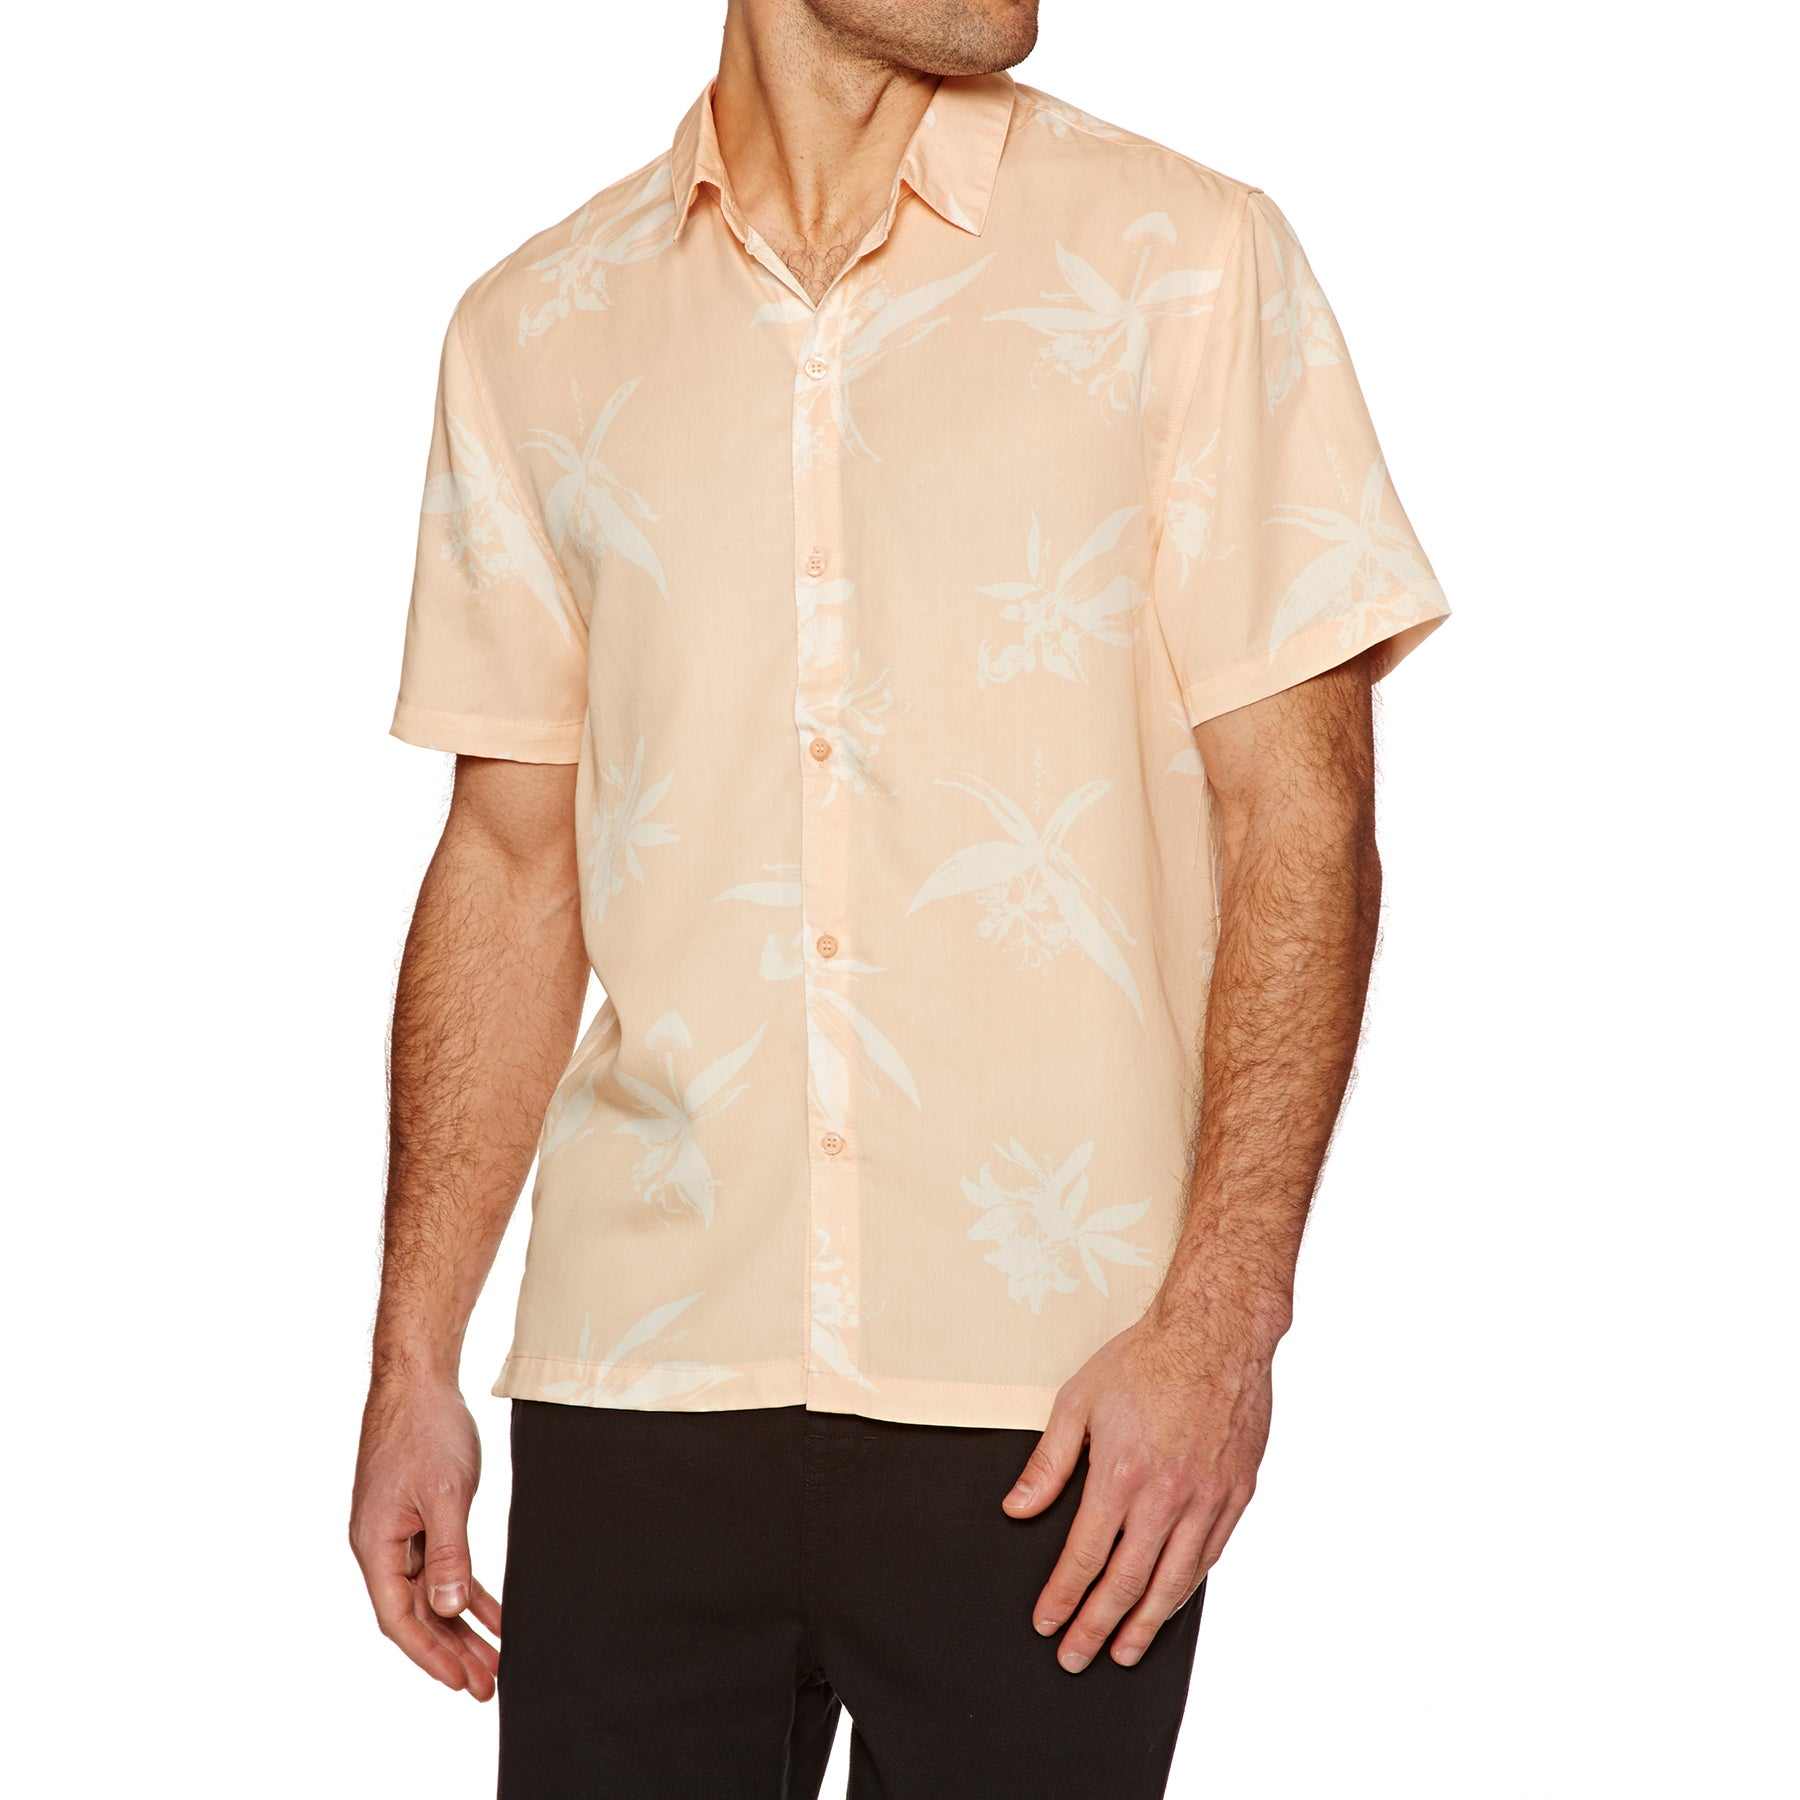 No News Bloom Short Sleeve Shirt